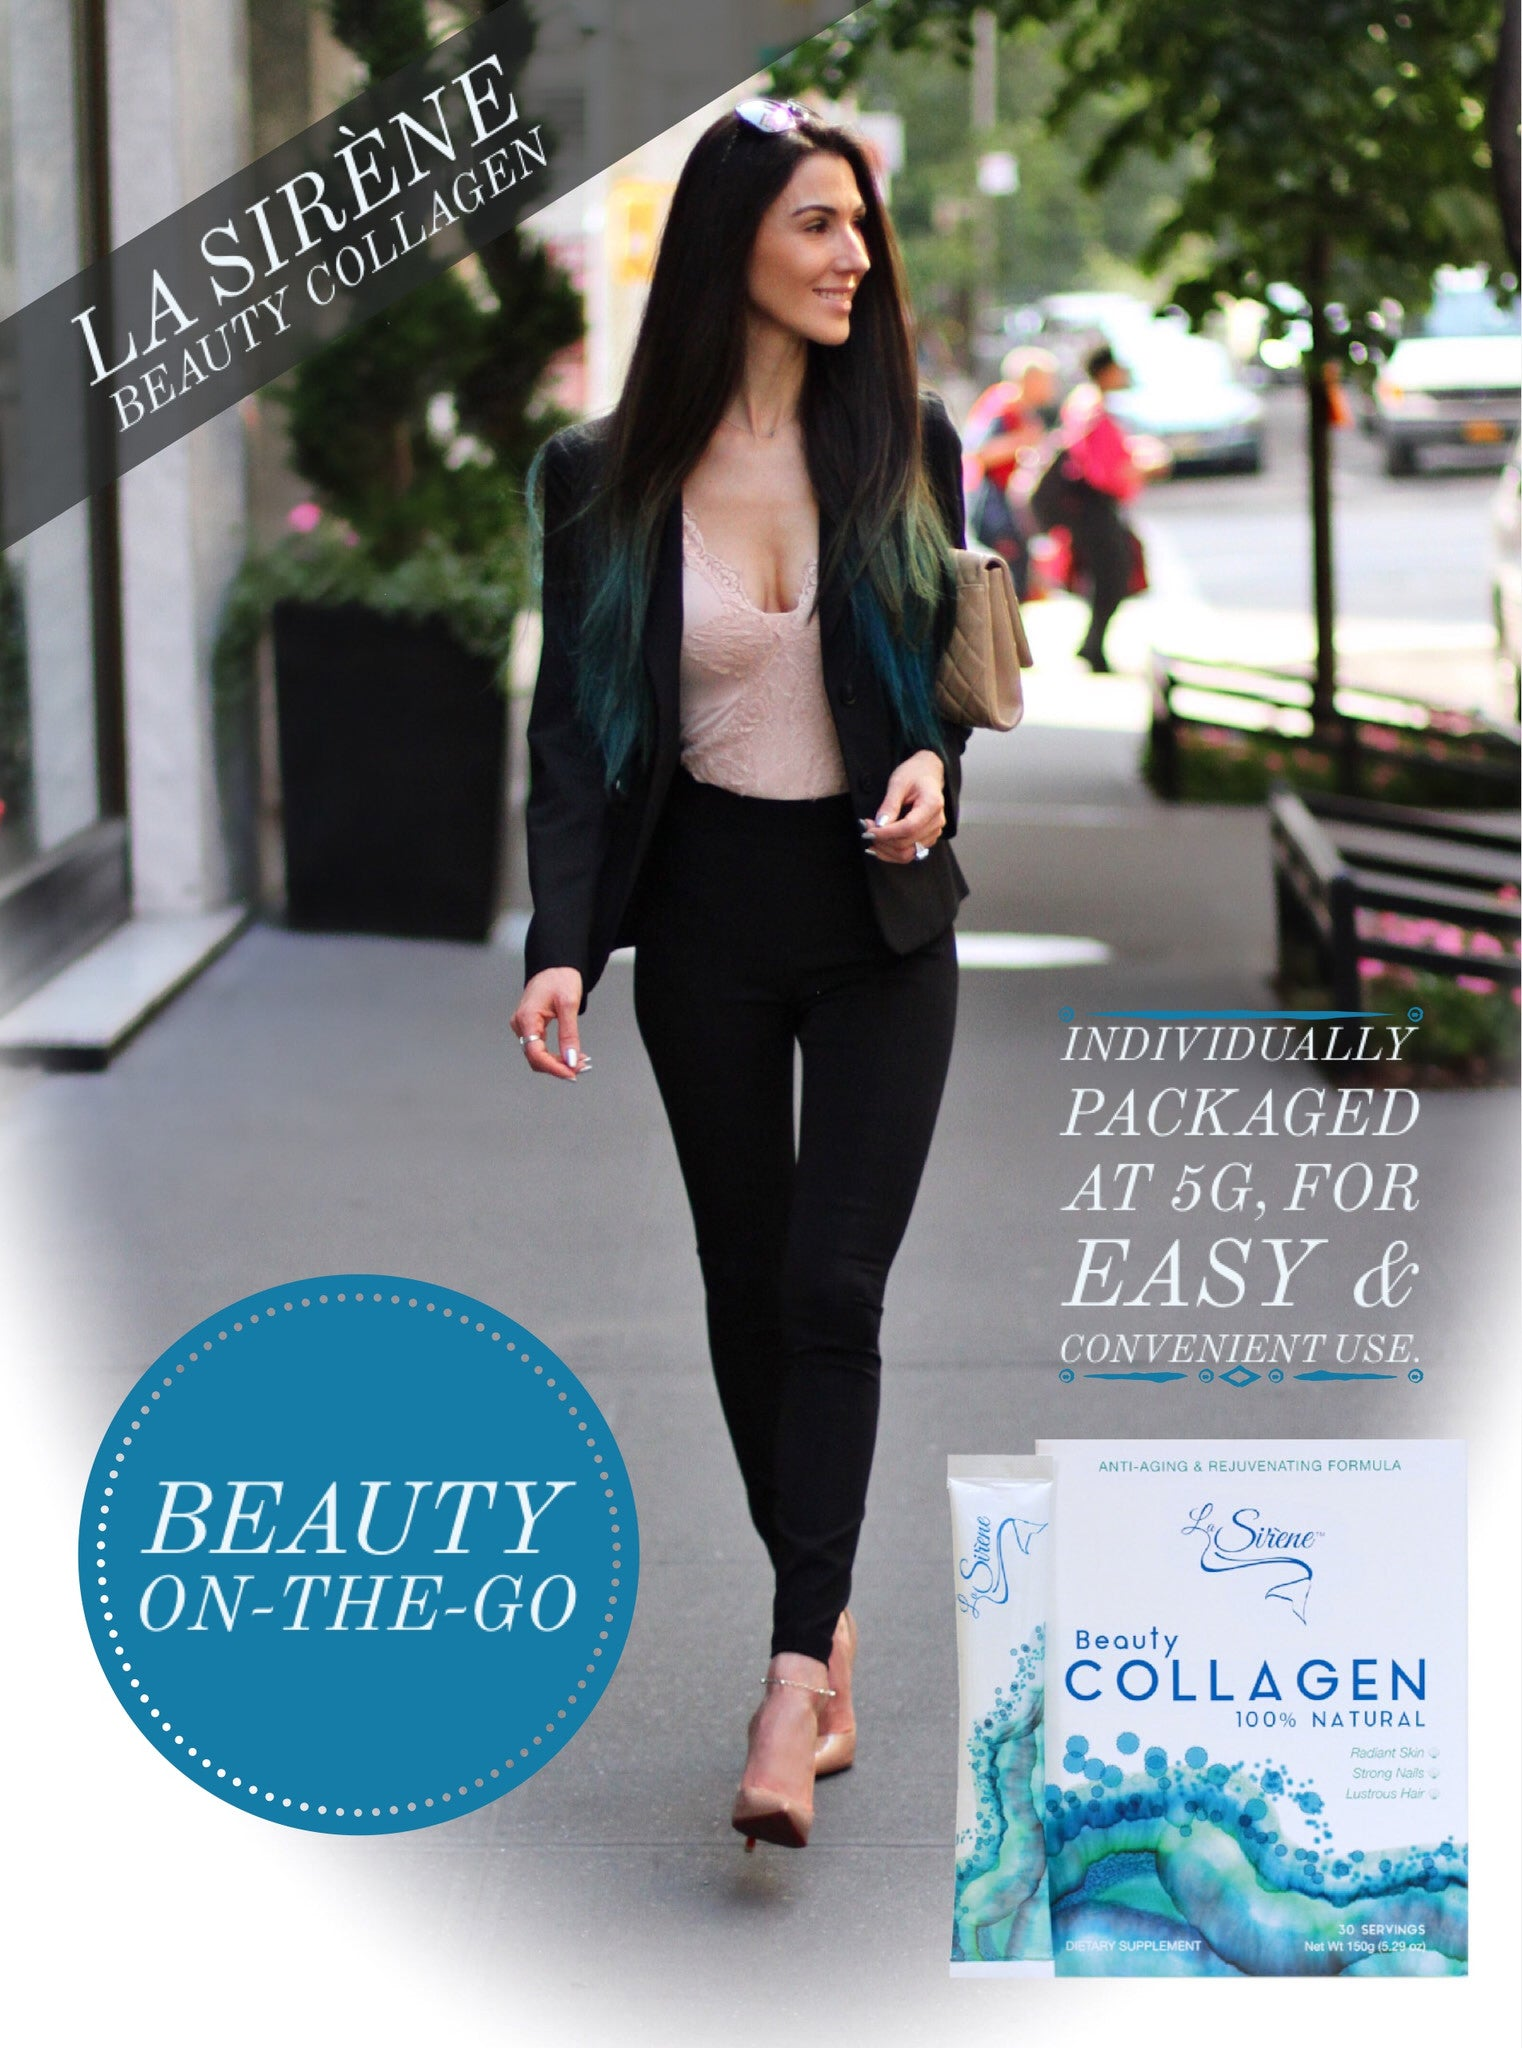 La Sirene Marine Collagen Beauty Supplement, Beauty-On-The-Go